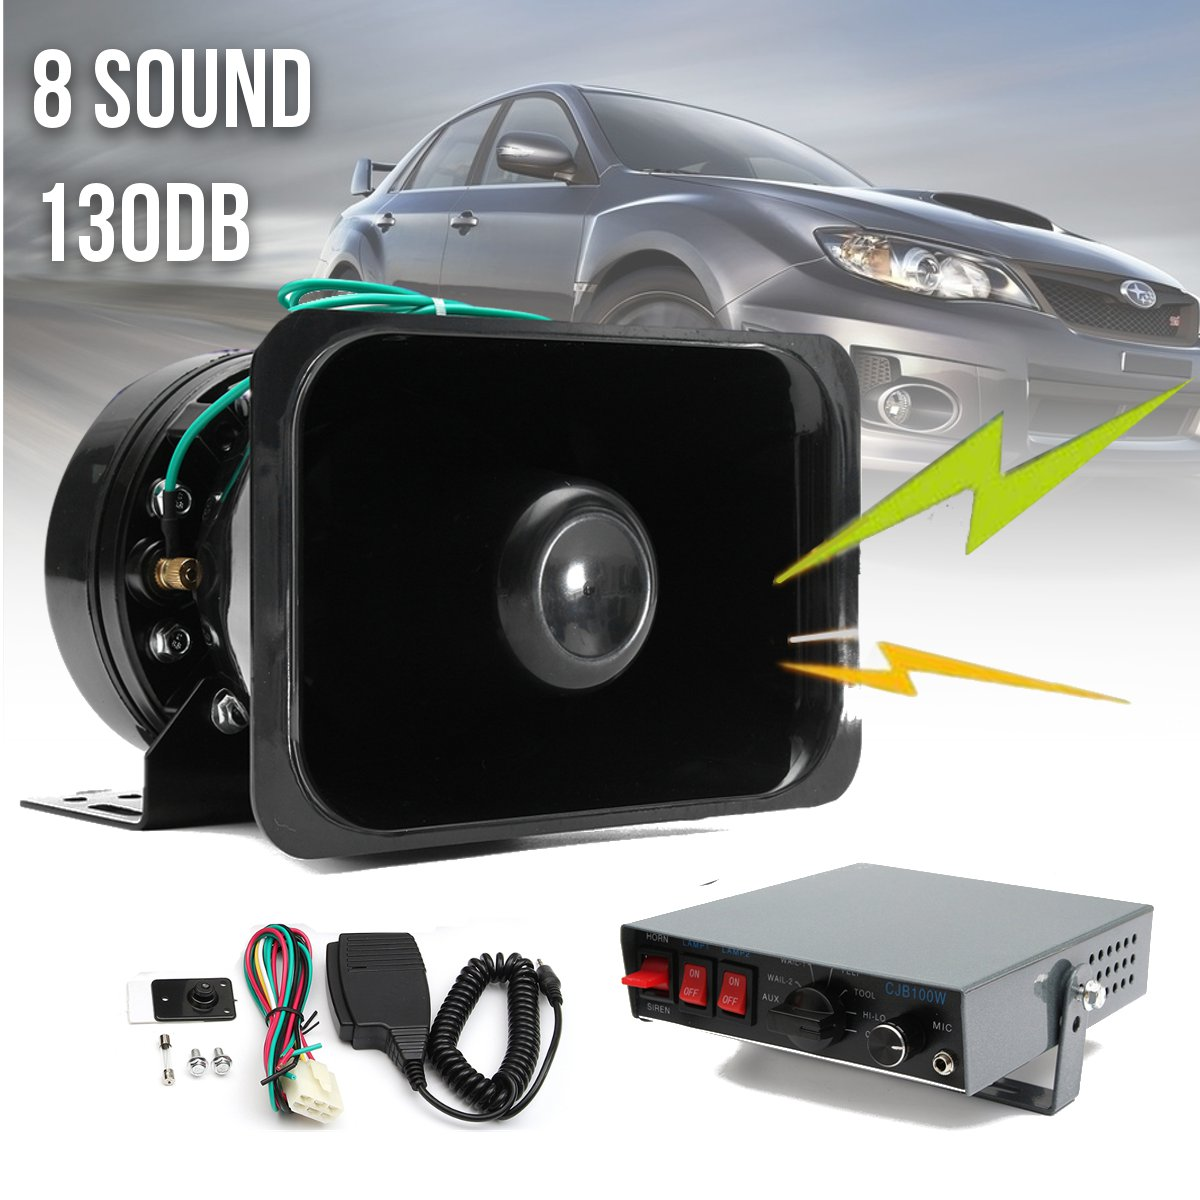 12V 8 Sound Car Truck Warning Alarm Loud Speaker Siren Horn MIC System  Megaphone